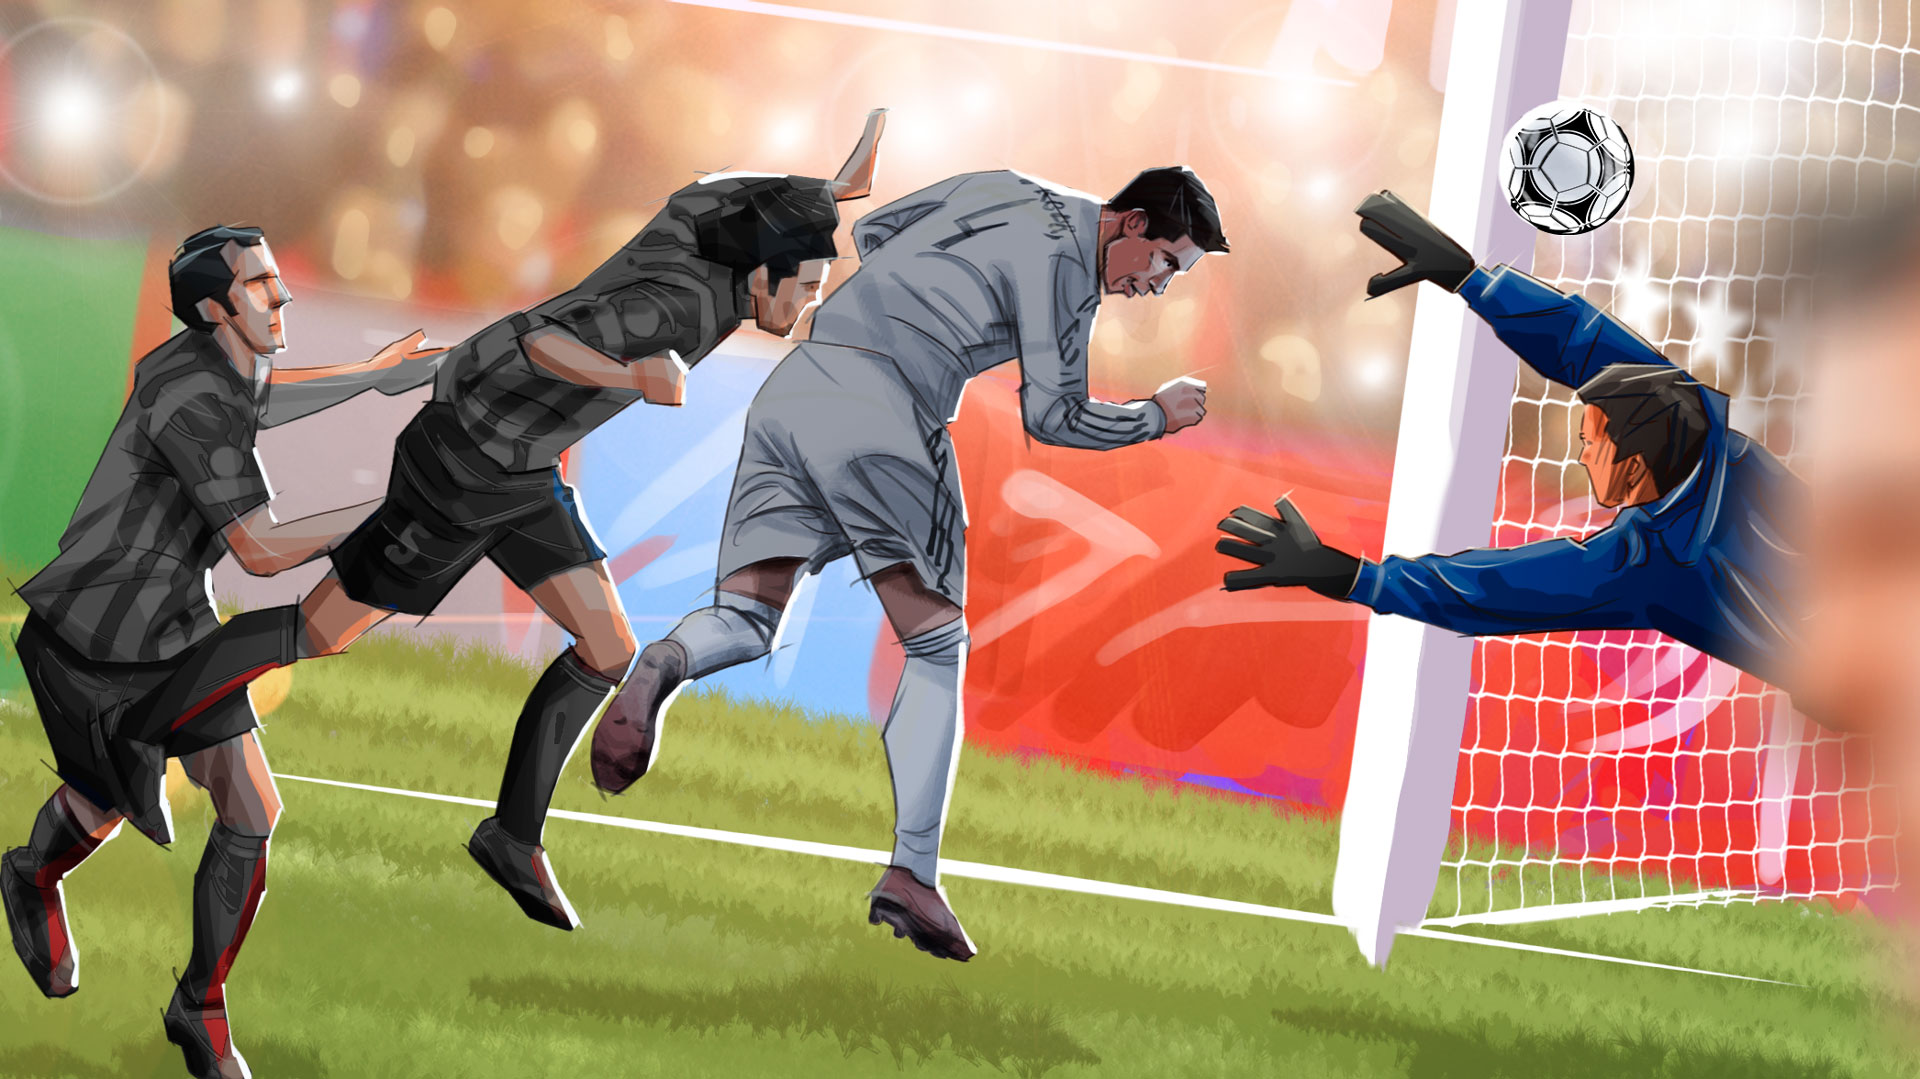 soccer goal illustration, 'Famous matches - illustrations for web game